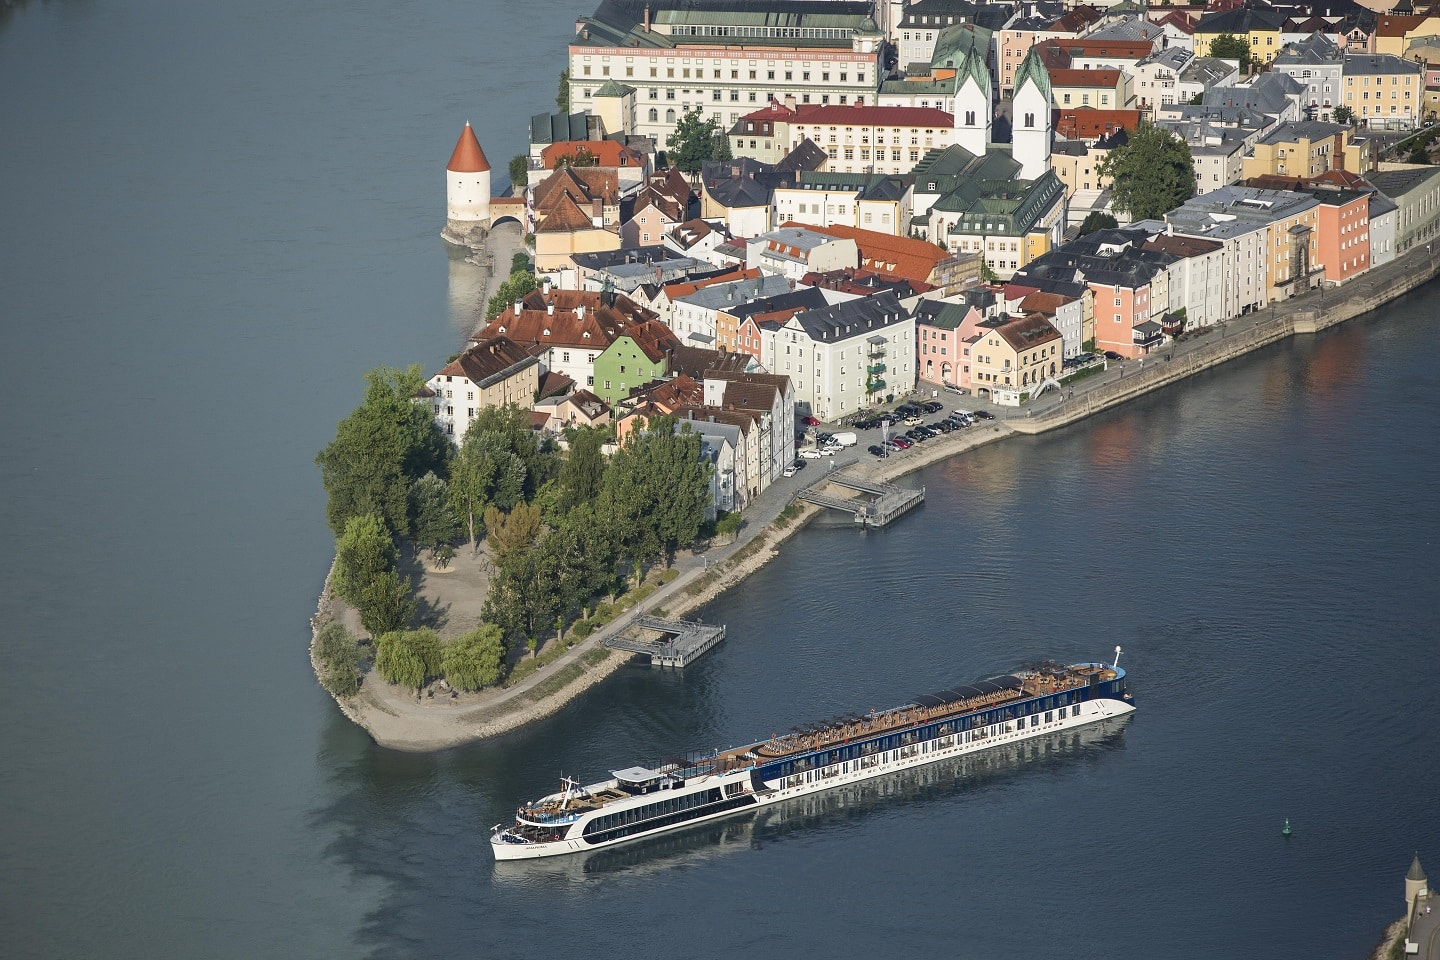 an AmaWaterways luxury river cruise cruising along Passau, Germany, family vacation packages can be booked with Southern Travel Agency Augusta, GA